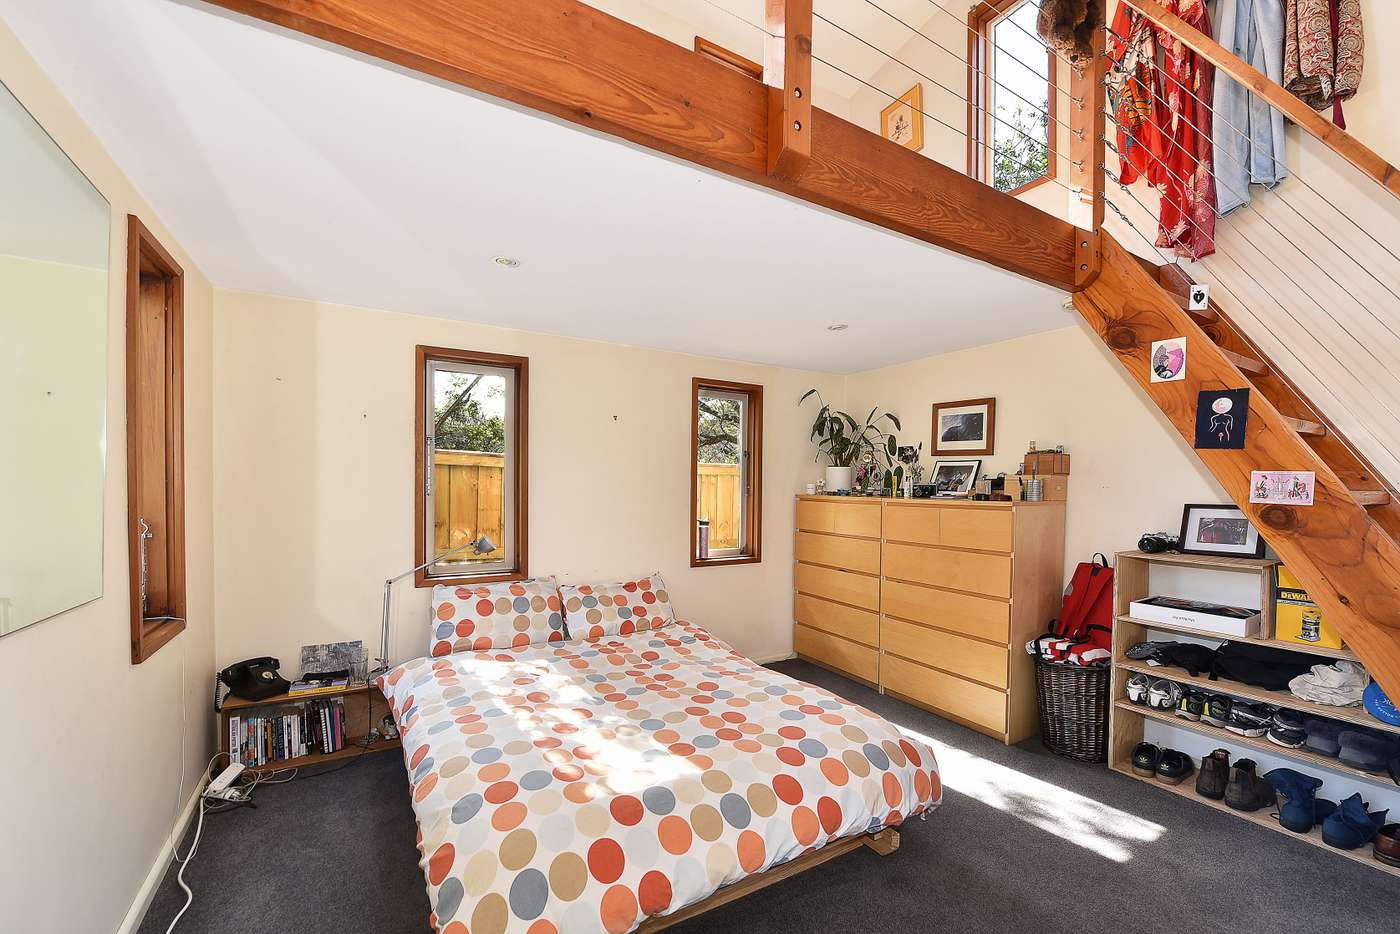 Fifth view of Homely house listing, 1 Booth Street, Coburg VIC 3058